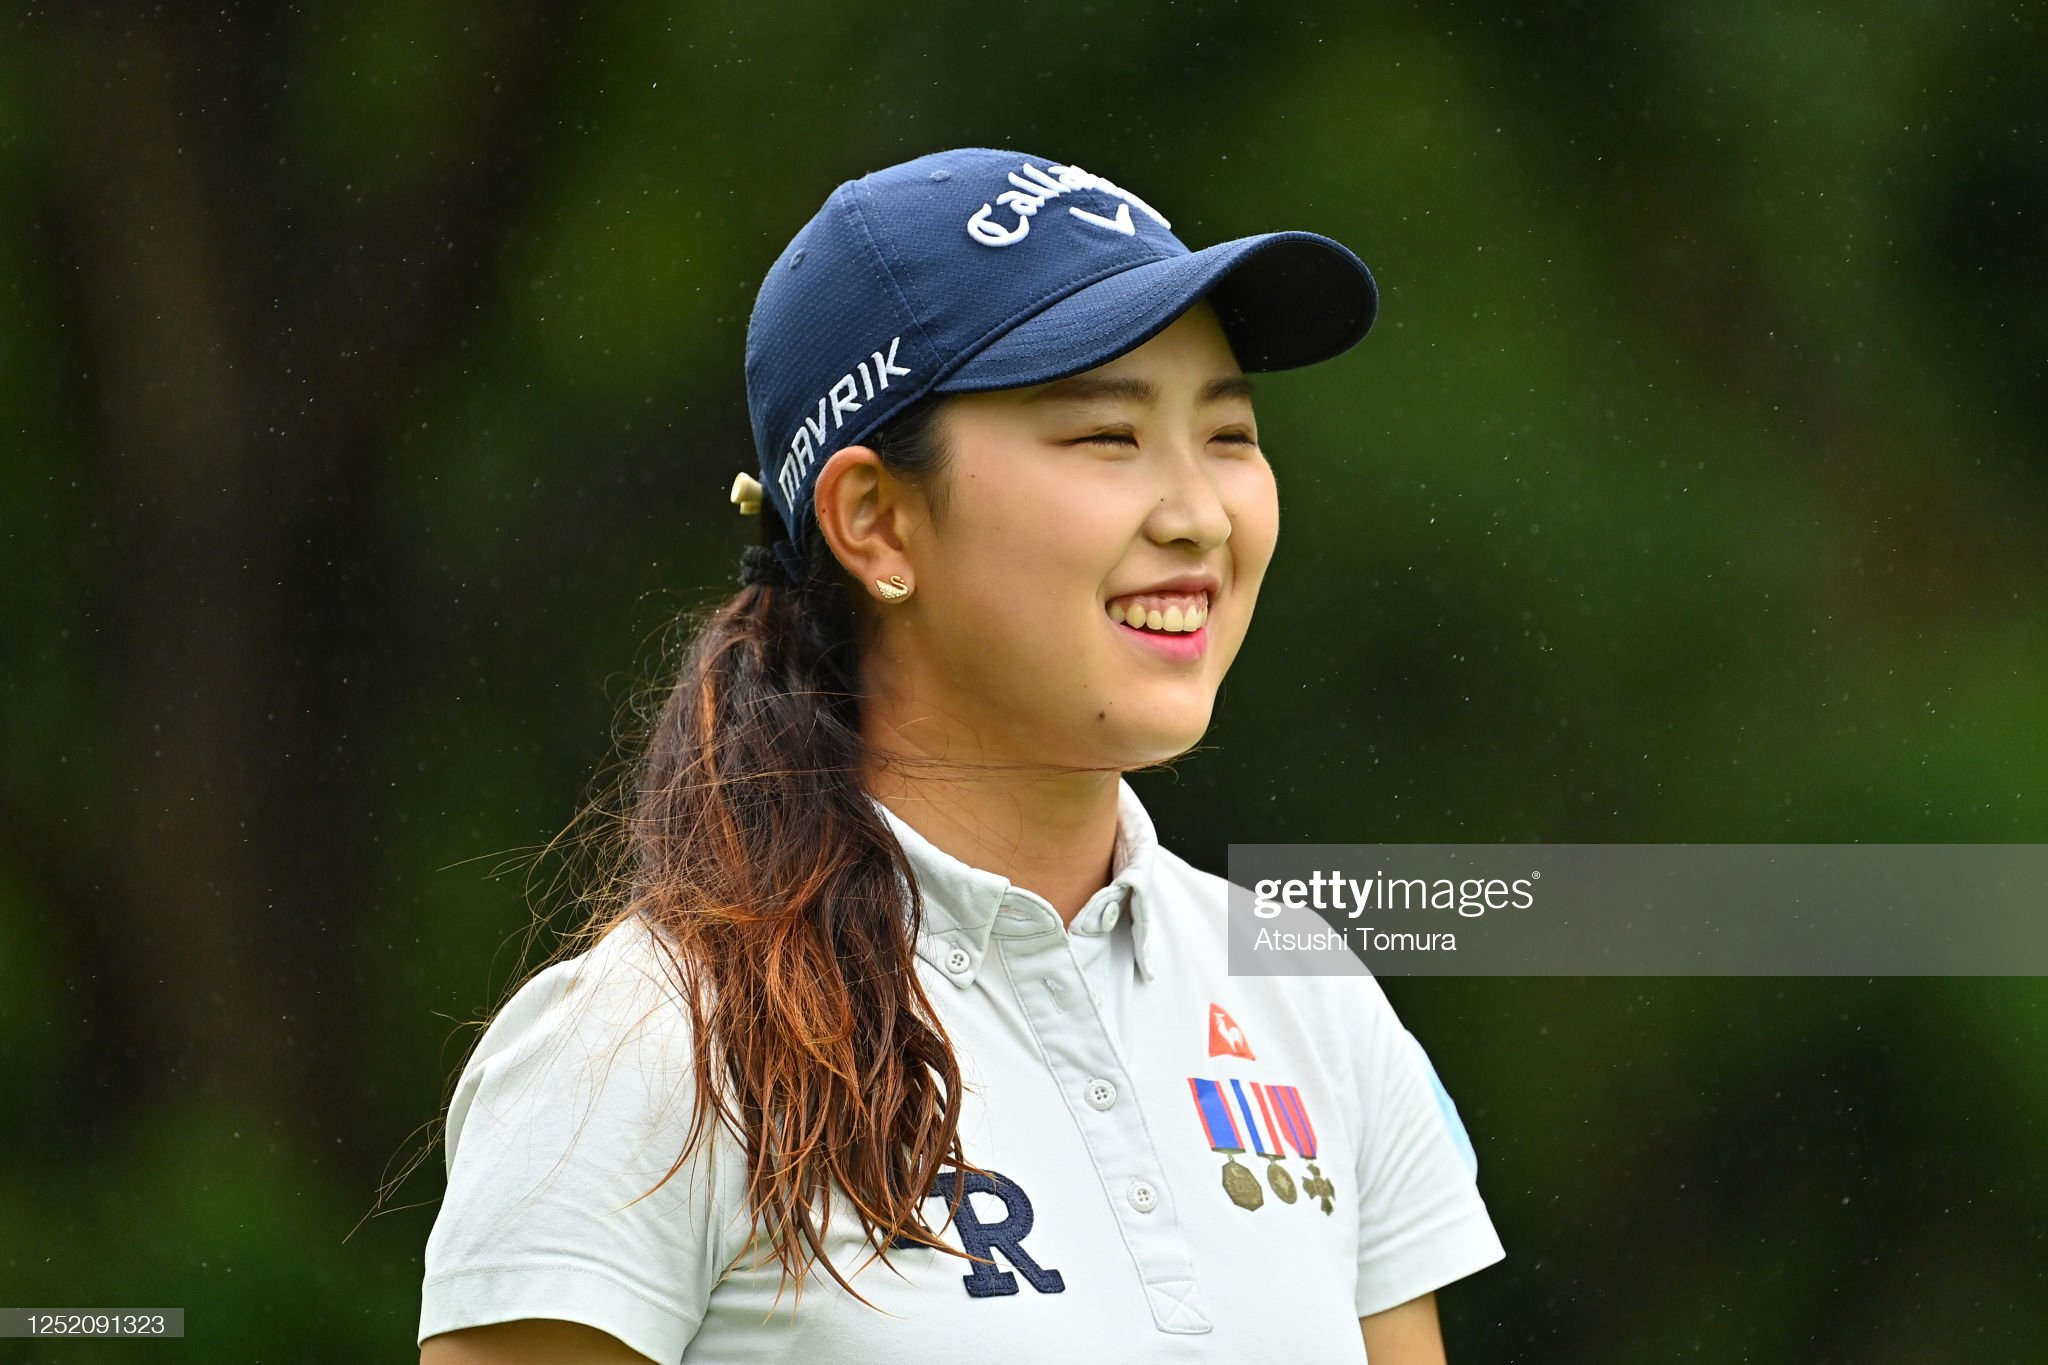 https://media.gettyimages.com/photos/hana-lee-of-south-korea-smiles-after-her-tee-shot-on-the-11th-hole-picture-id1252091323?s=2048x2048